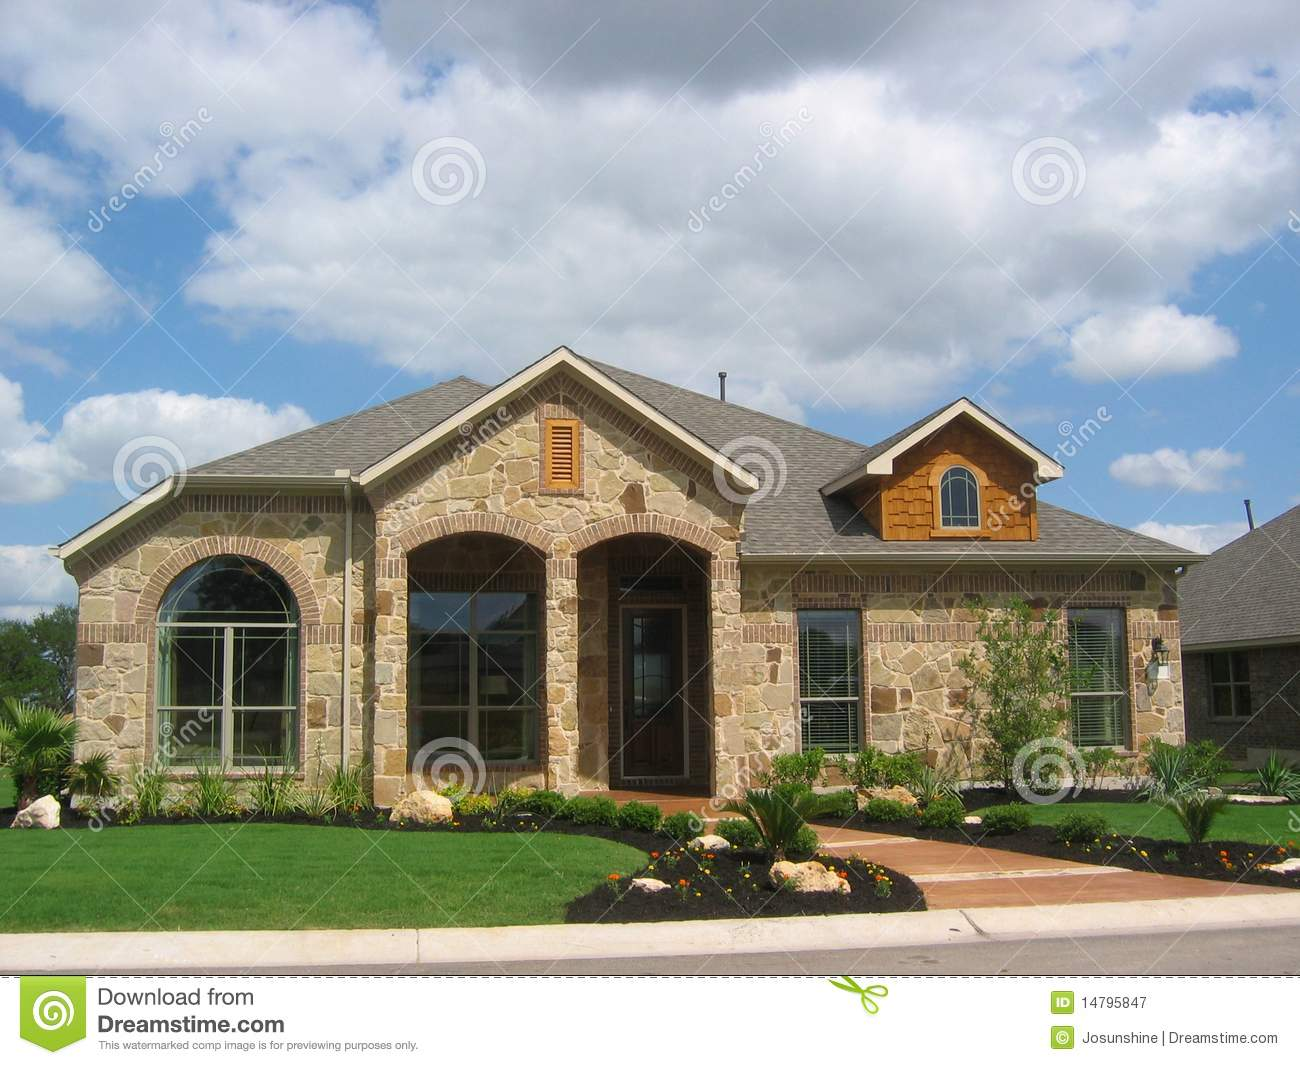 Stone house wood siding stock image image of rugged - Casas de madera y piedra ...